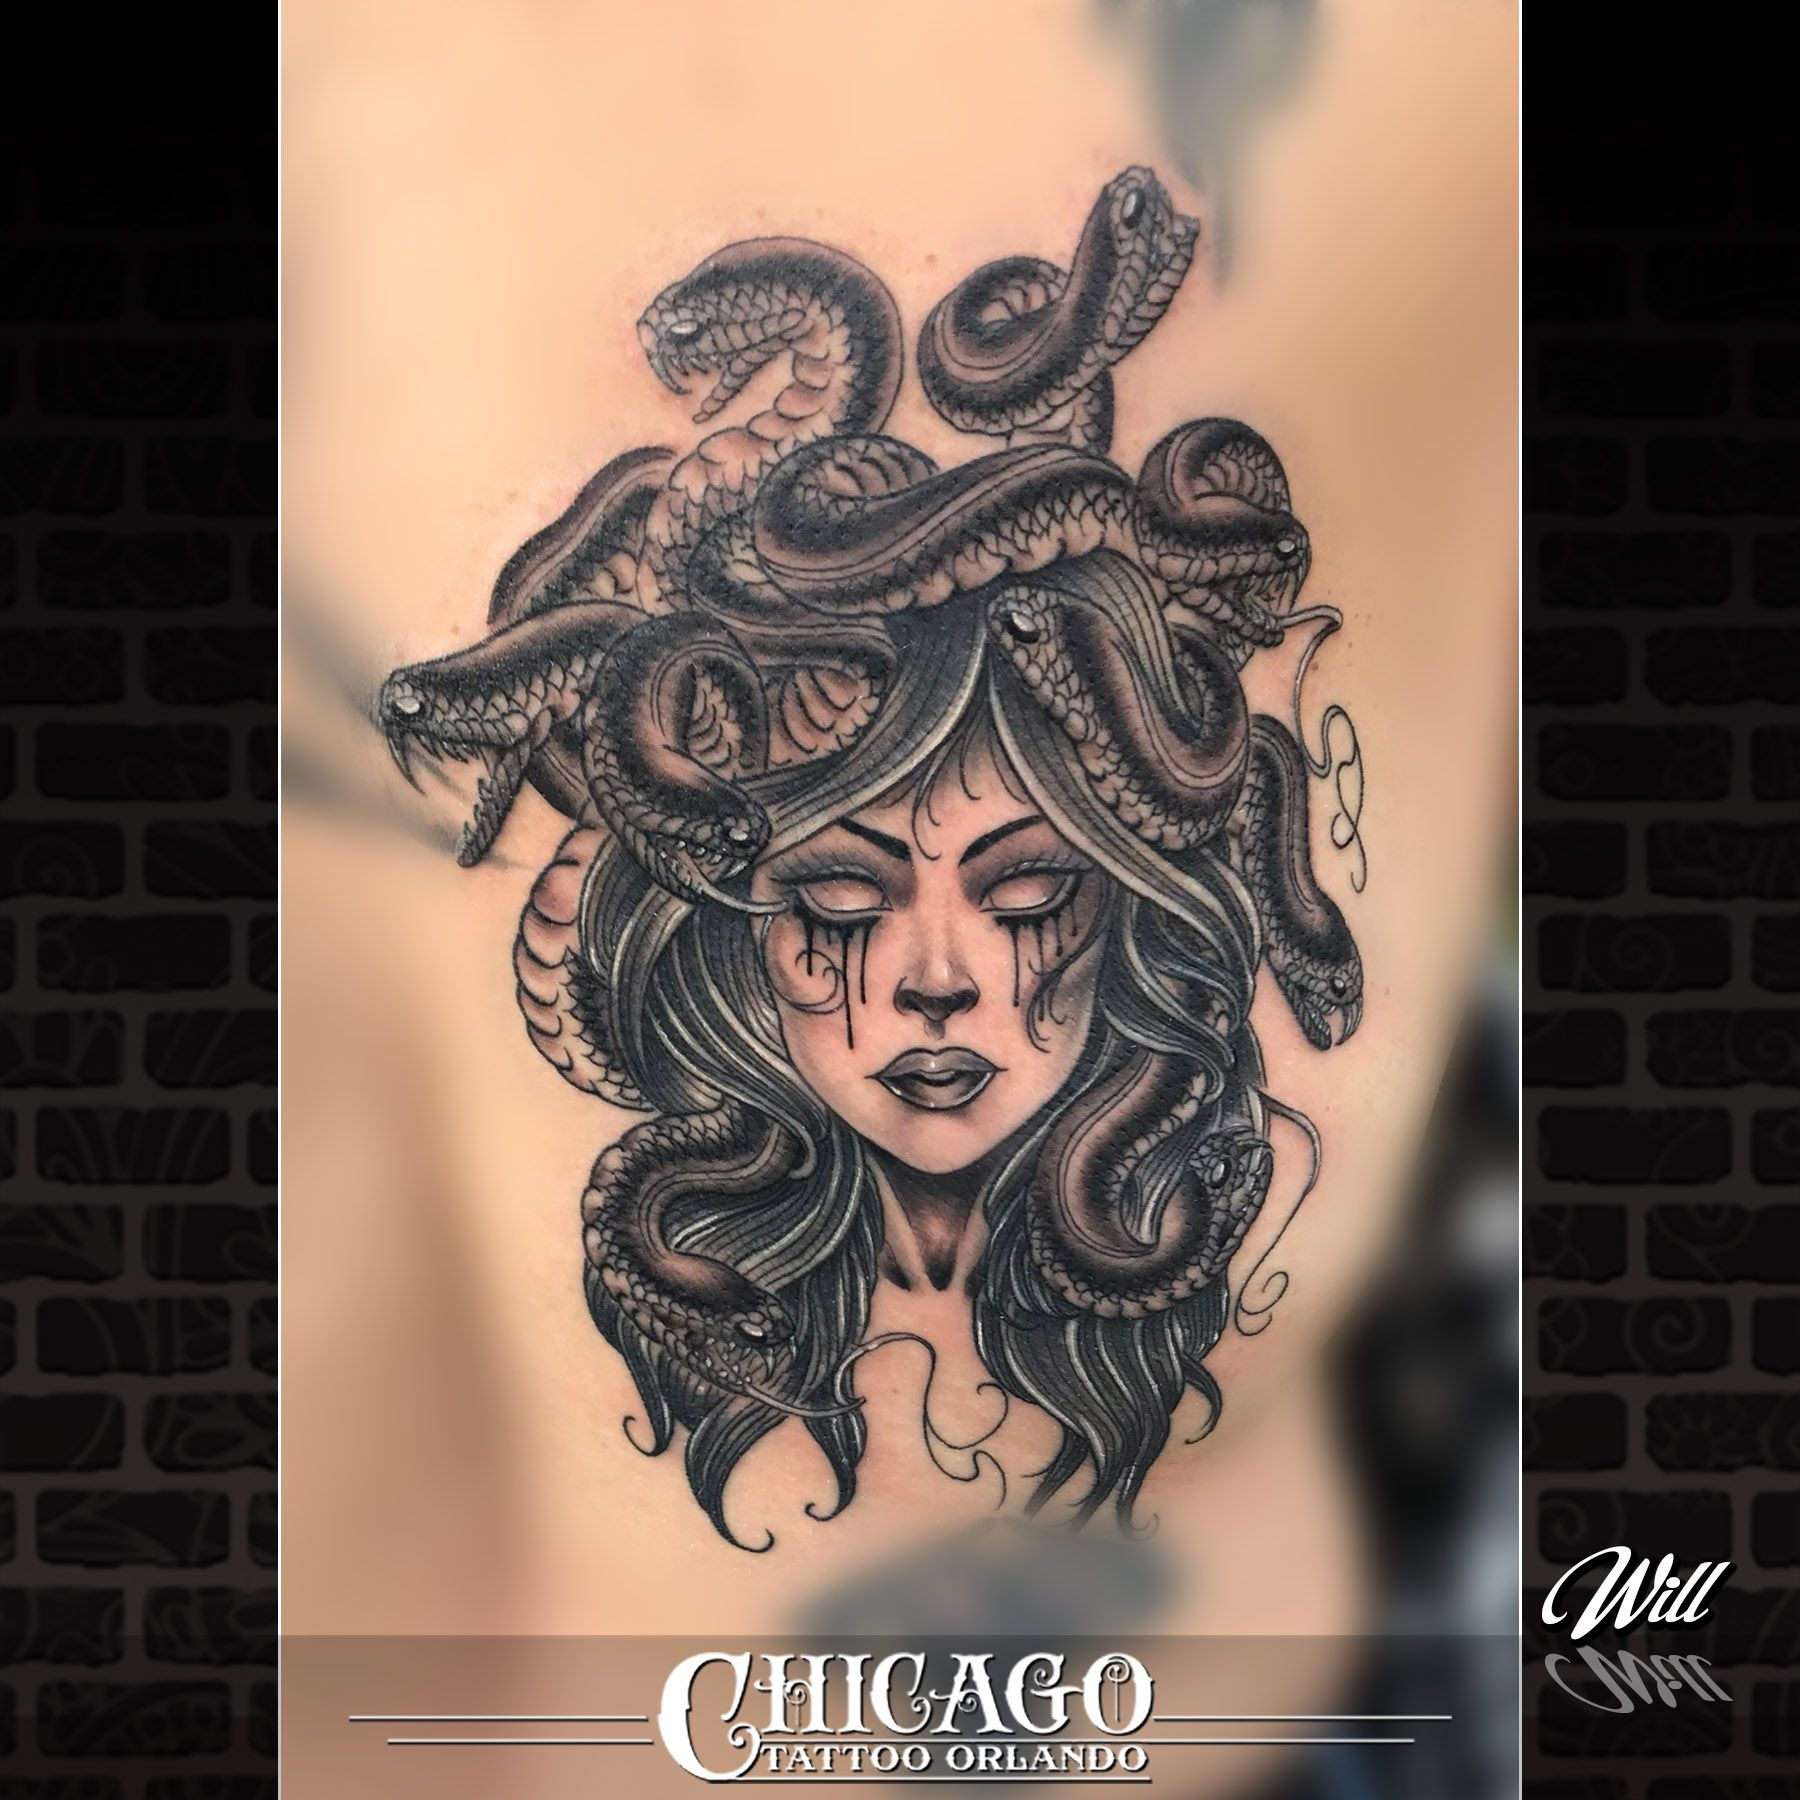 Chicago Tattoo Orlando Halloween 2020 _ M E D U S A _ & her venomous snakes. This one's by Will! Will is